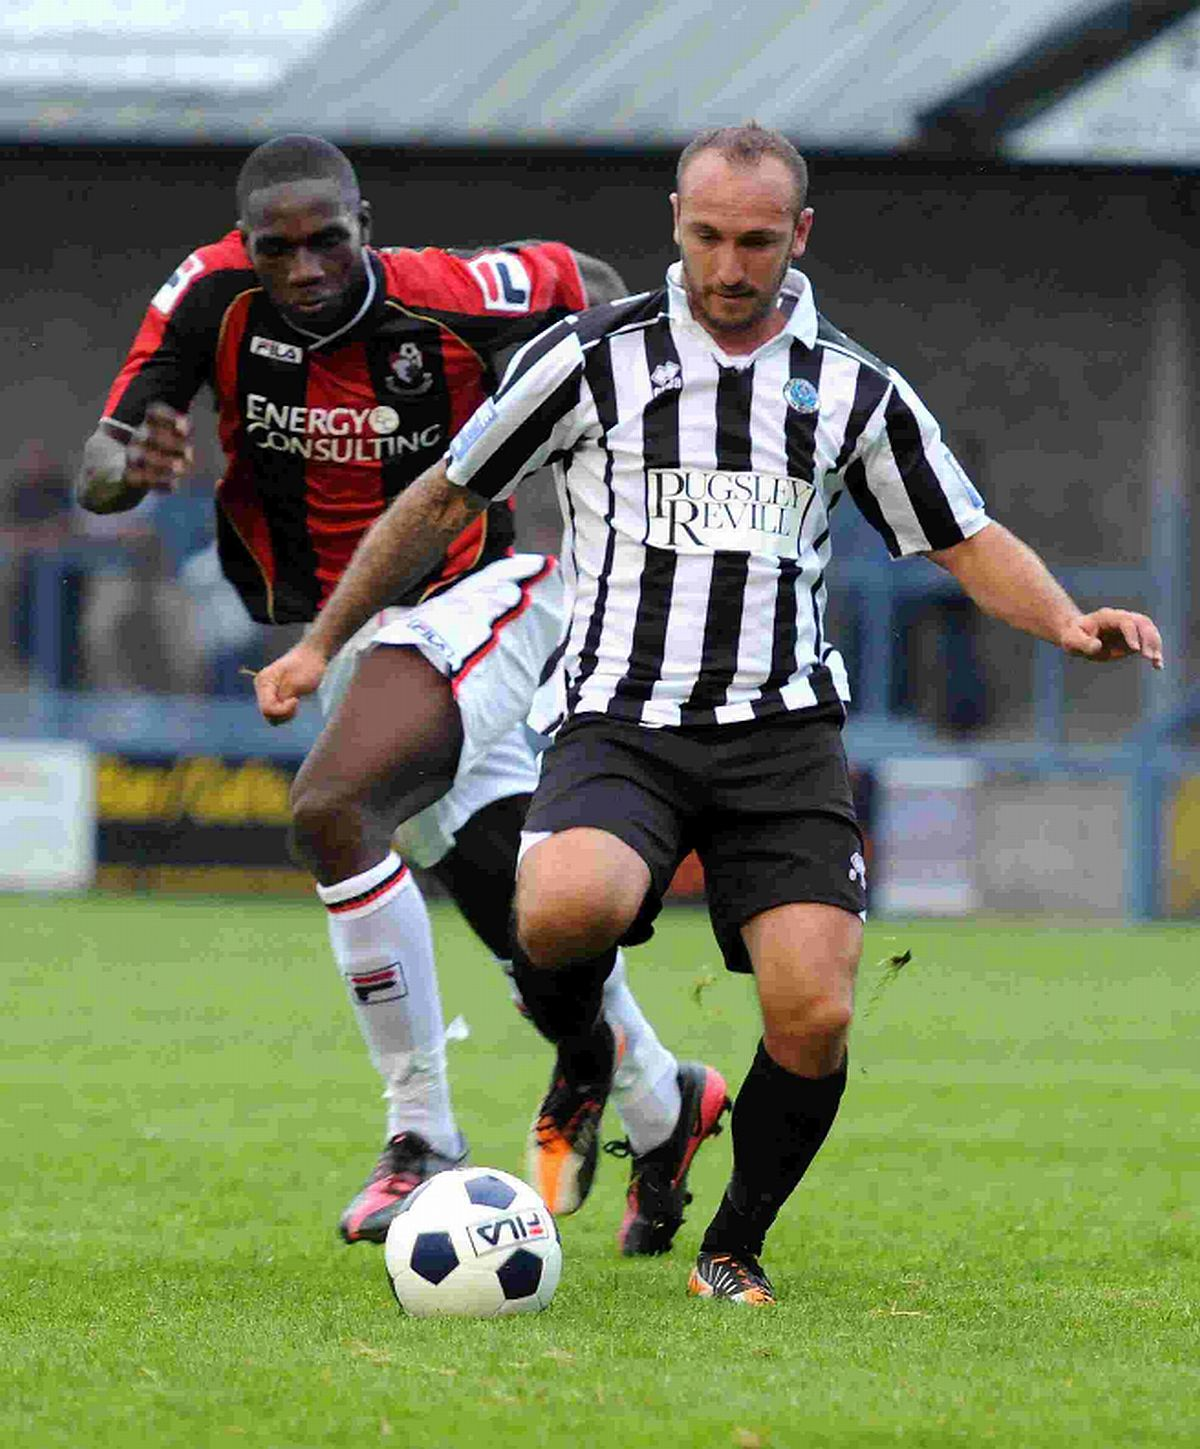 BIG LOSS: Striker Ben Watson was among a number of high-profile players who left the club this season